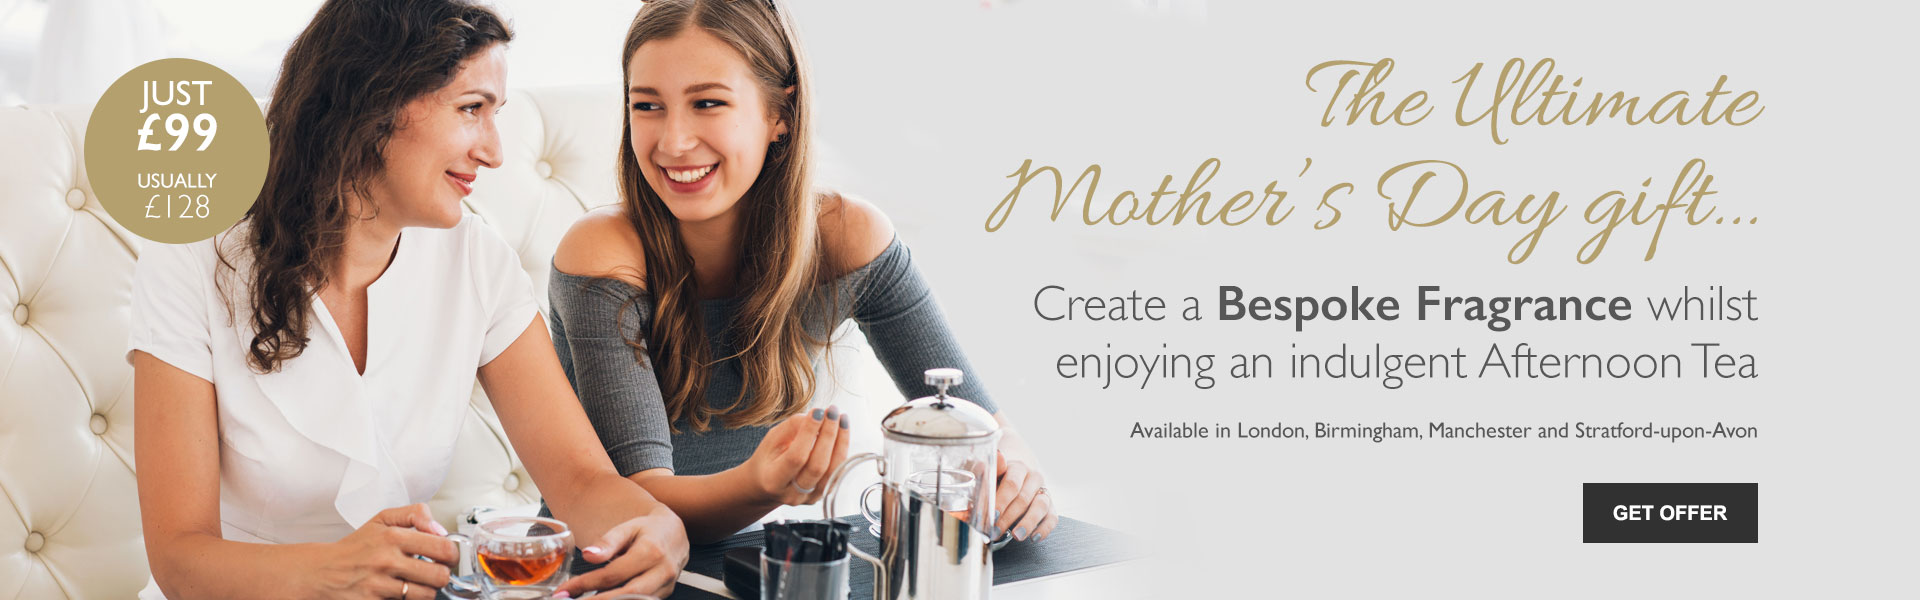 The Ultimate Mother's Day gift - Create a Bespoke Fragrance whilst enjoying an indulgent Afternoon Tea. Available in London, Birmingham, Manchester and Stratford-upon-Avon